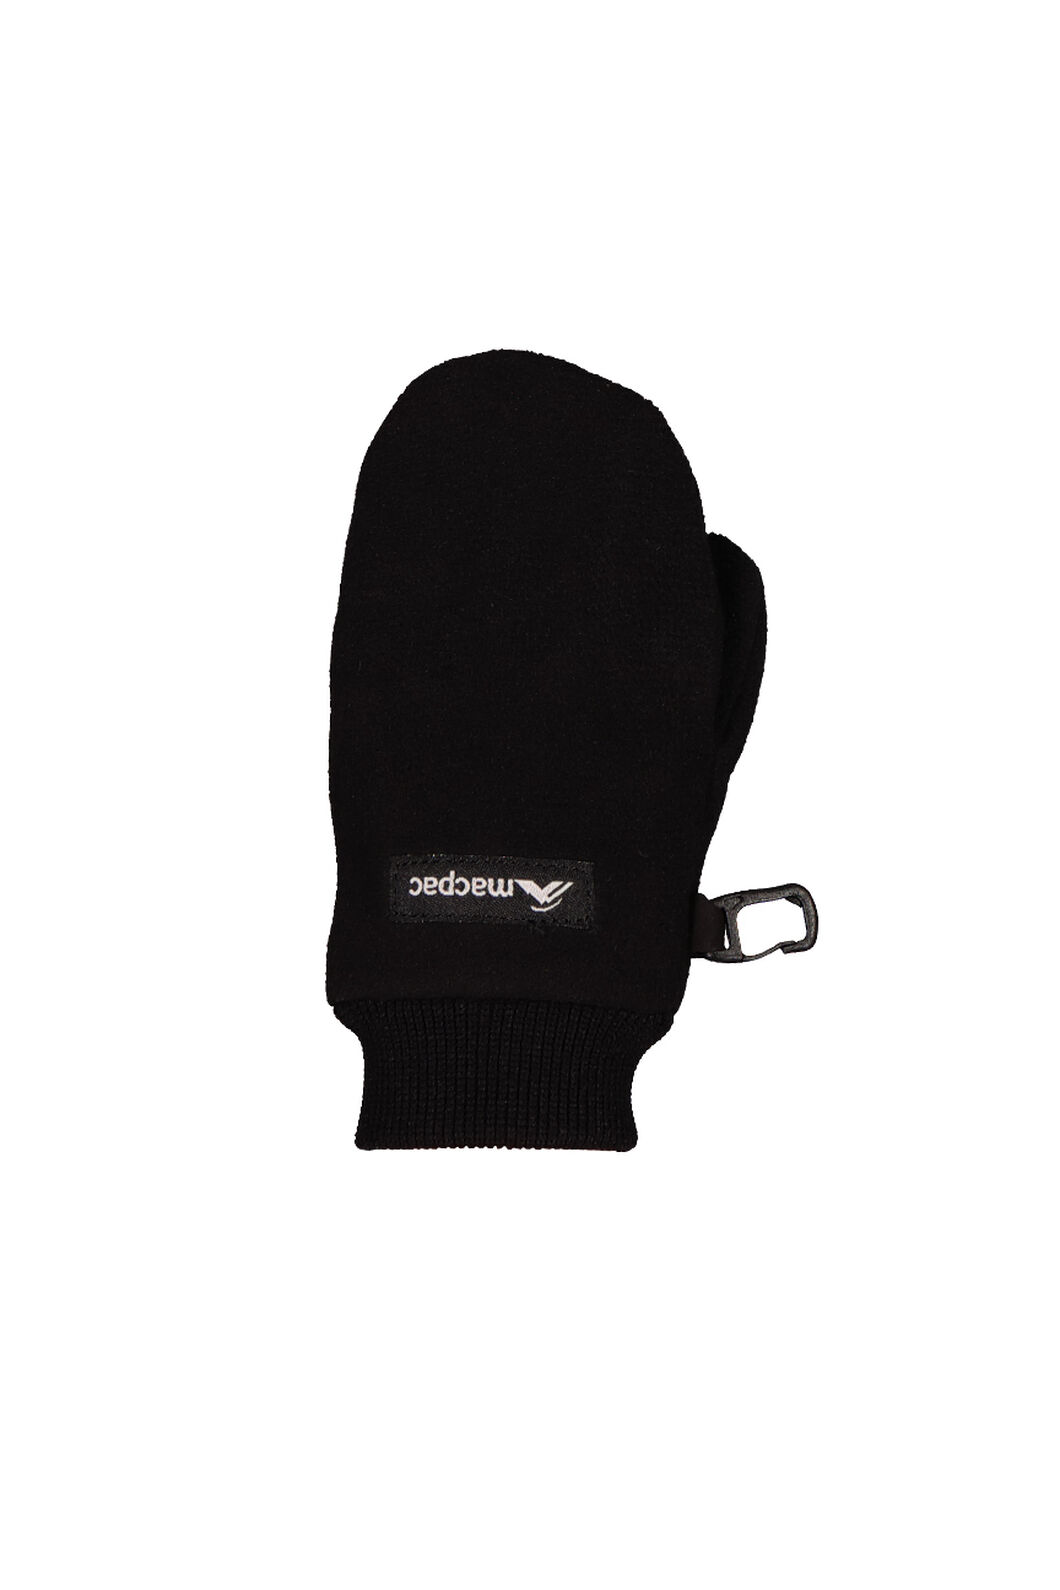 Macpac Fleece Mittens Kids', Black, hi-res